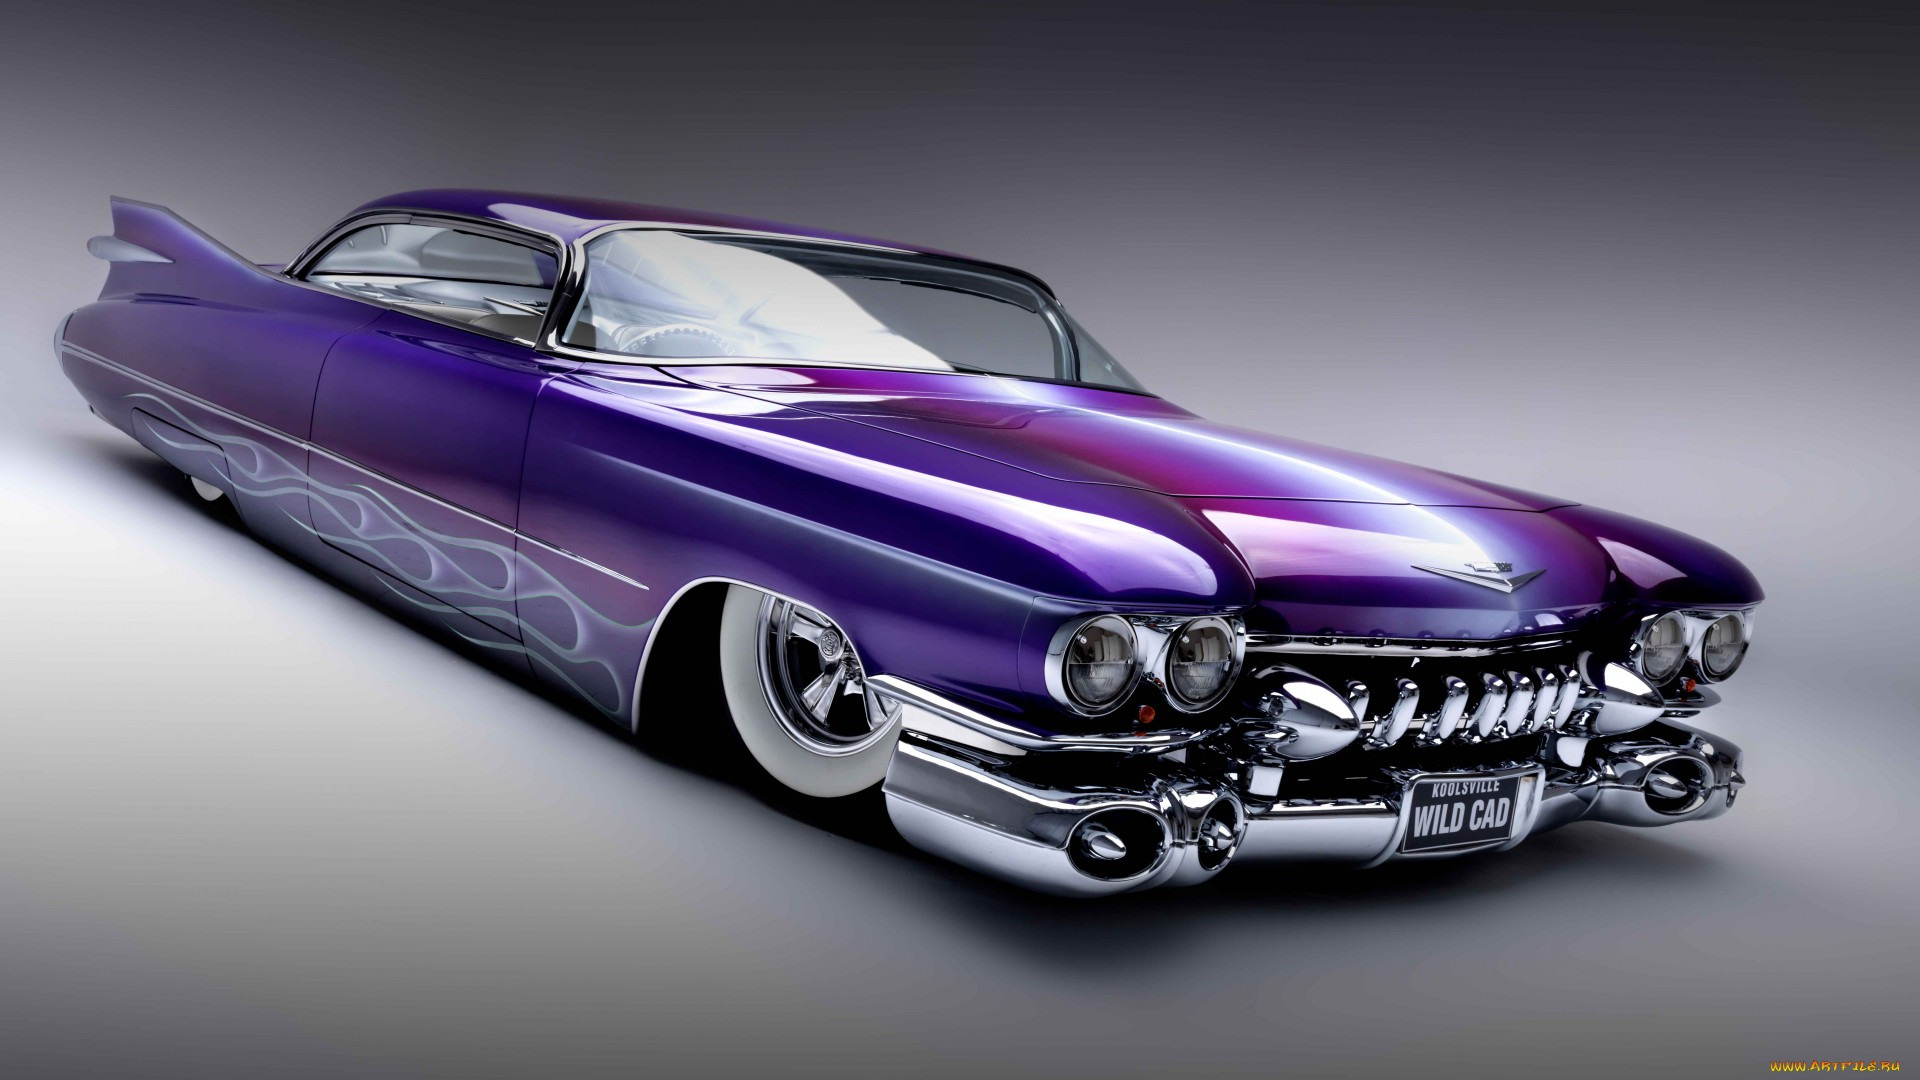 Lowrider Cars Wallpaper  WallpaperSafari